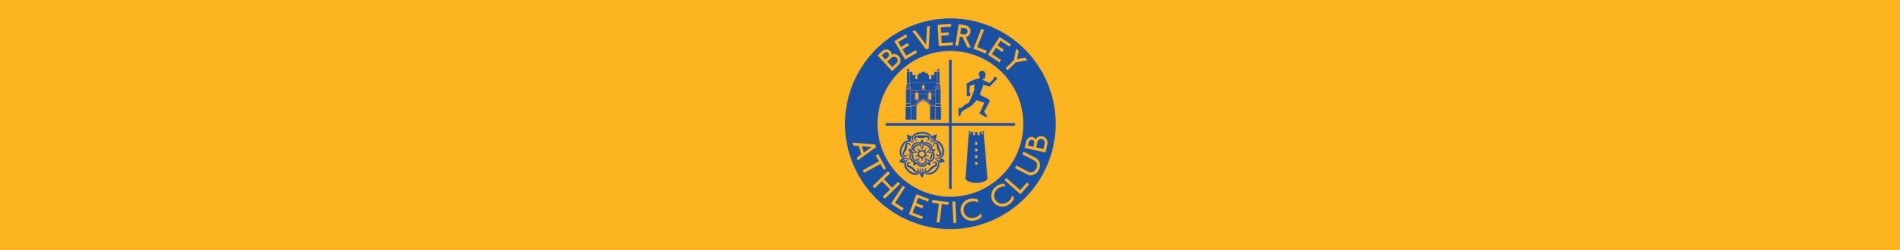 Beverley Athetic Club Couch to 5k programme 2021